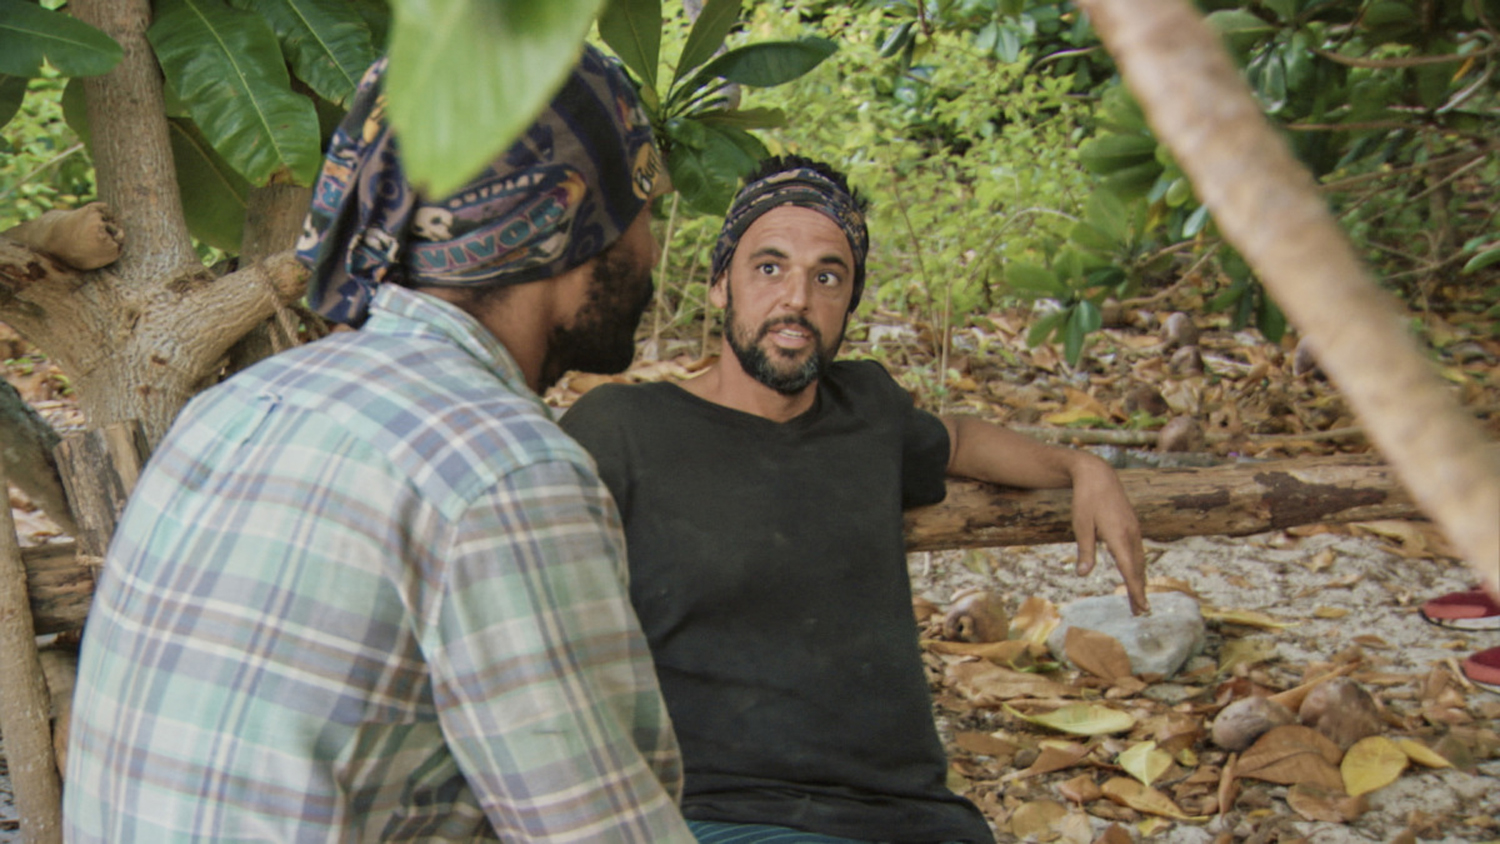 """""""It Is Game Time Kids"""" - Wendell Holland and Domenick Abbate on the fourteenth episode of Survivor: Ghost Island, which is a two-hour season finale airing Wednesday, May 23 (8:00-11:00 PM, ET/PT) on the CBS Television Network. Photo: Screen Grab/CBS Entertainment �©2018 CBS Broadcasting, Inc. All Rights Reserved."""